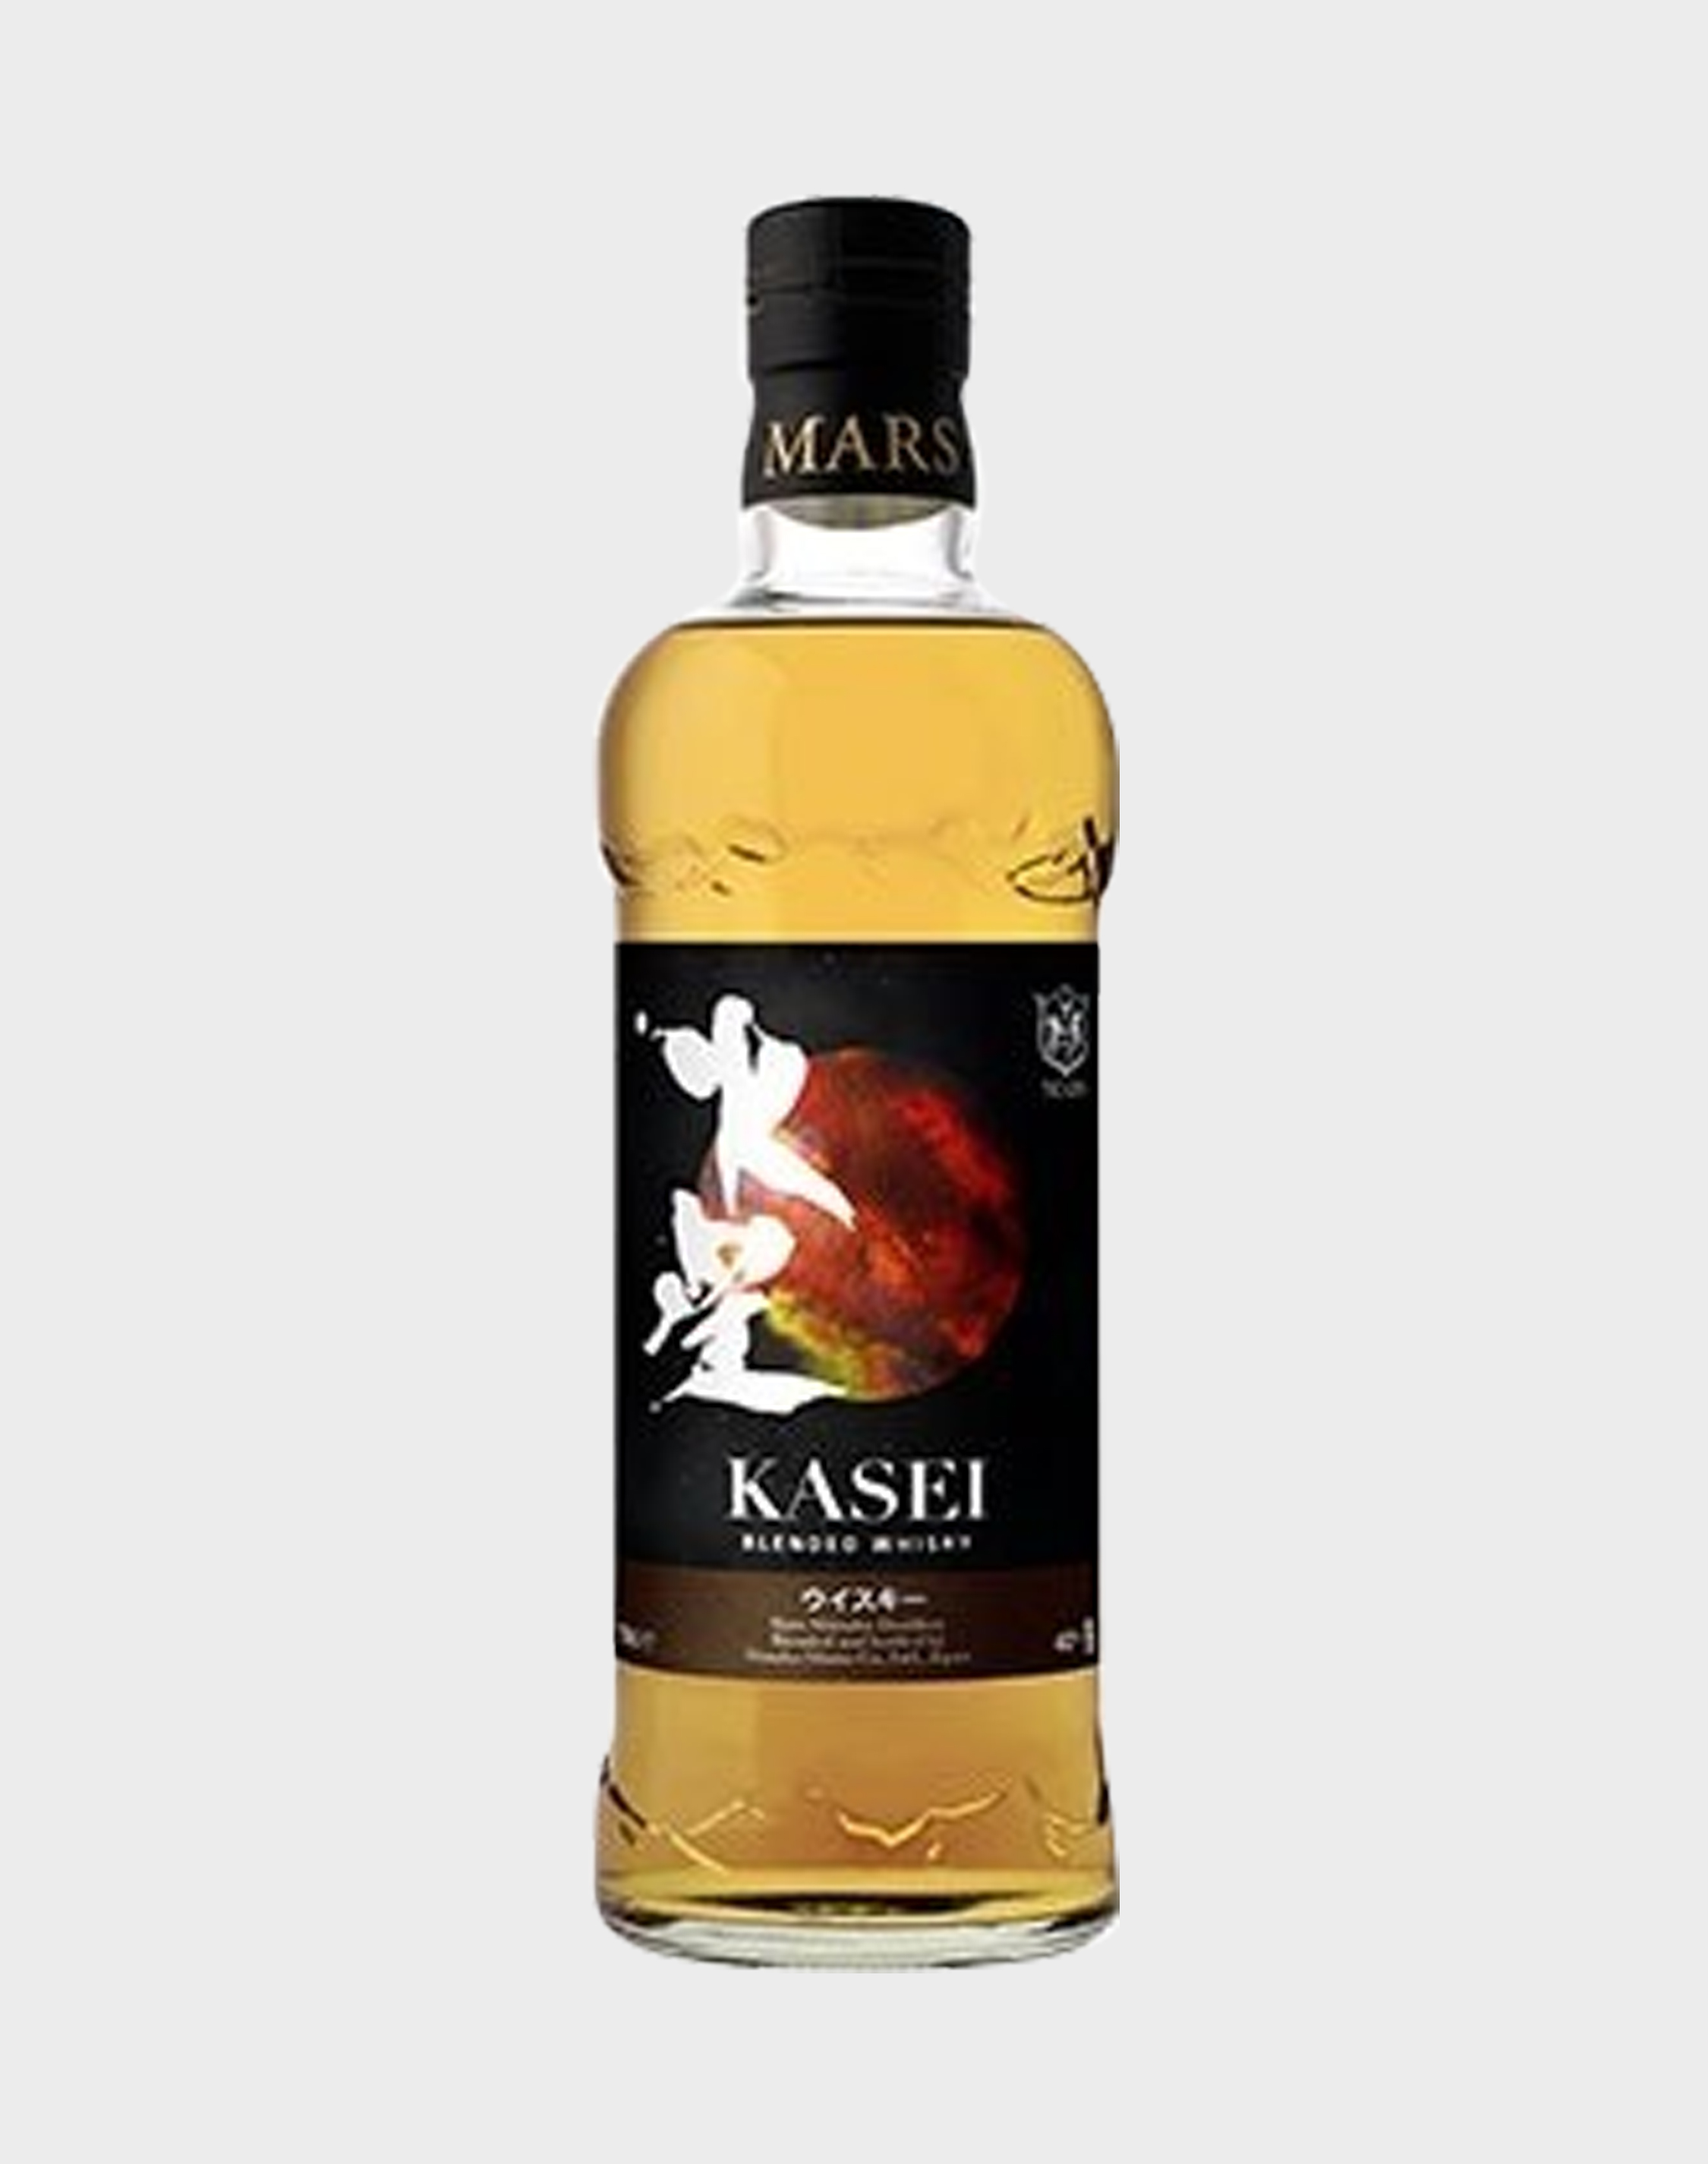 Mars Kasei Blended Whisky LMdW Exclusive